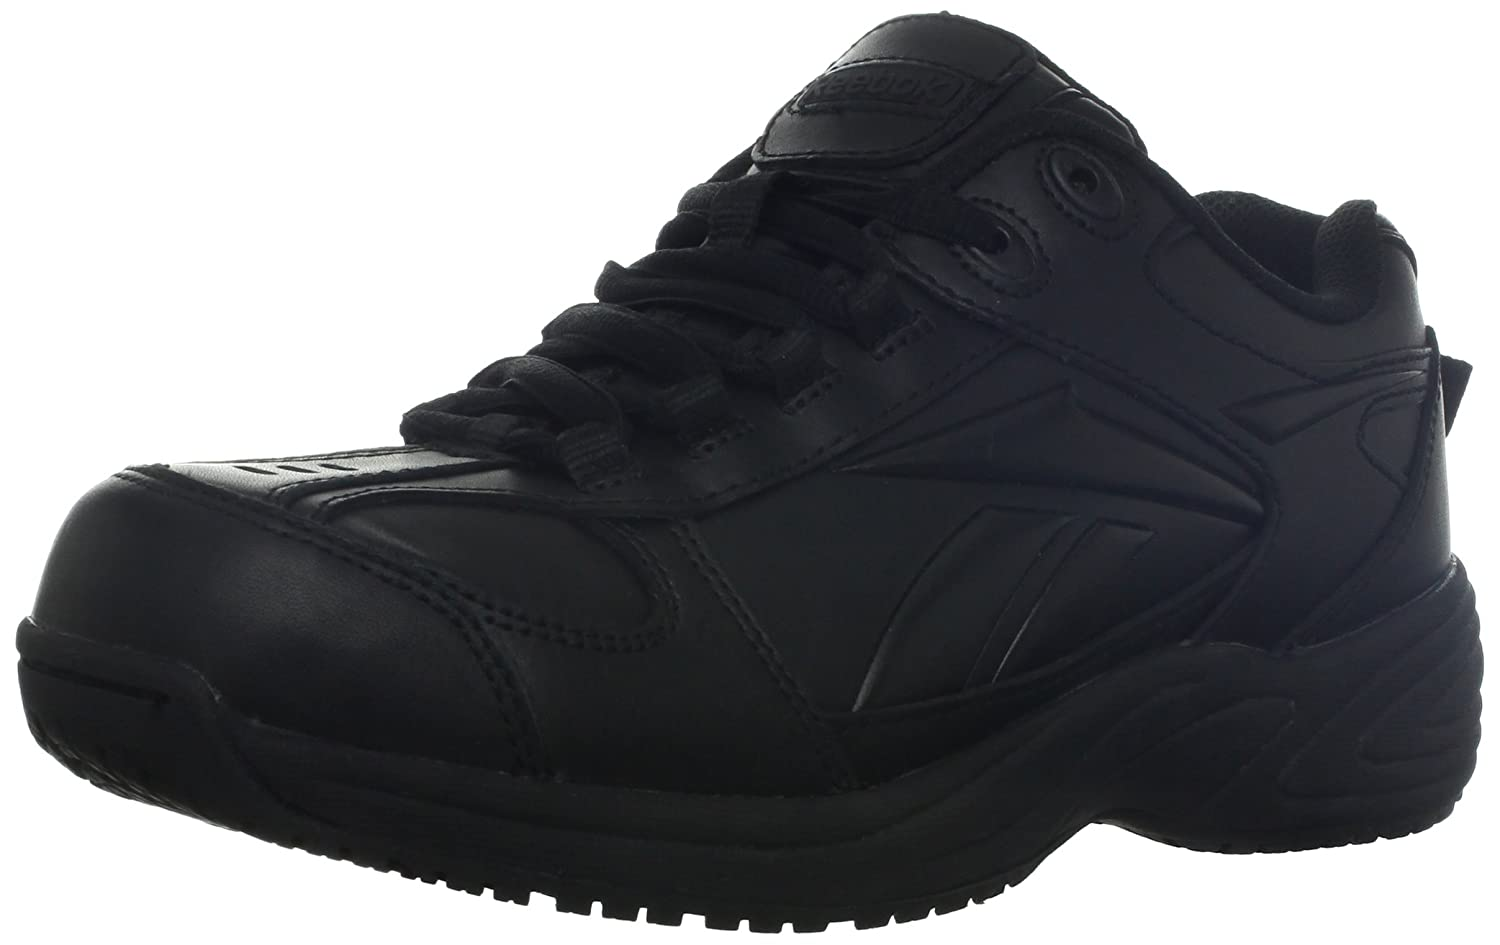 Reebok Work Women's Jorie RB110 Athletic Safety Shoe B00A7VRZ78 8 B(M) US|Black